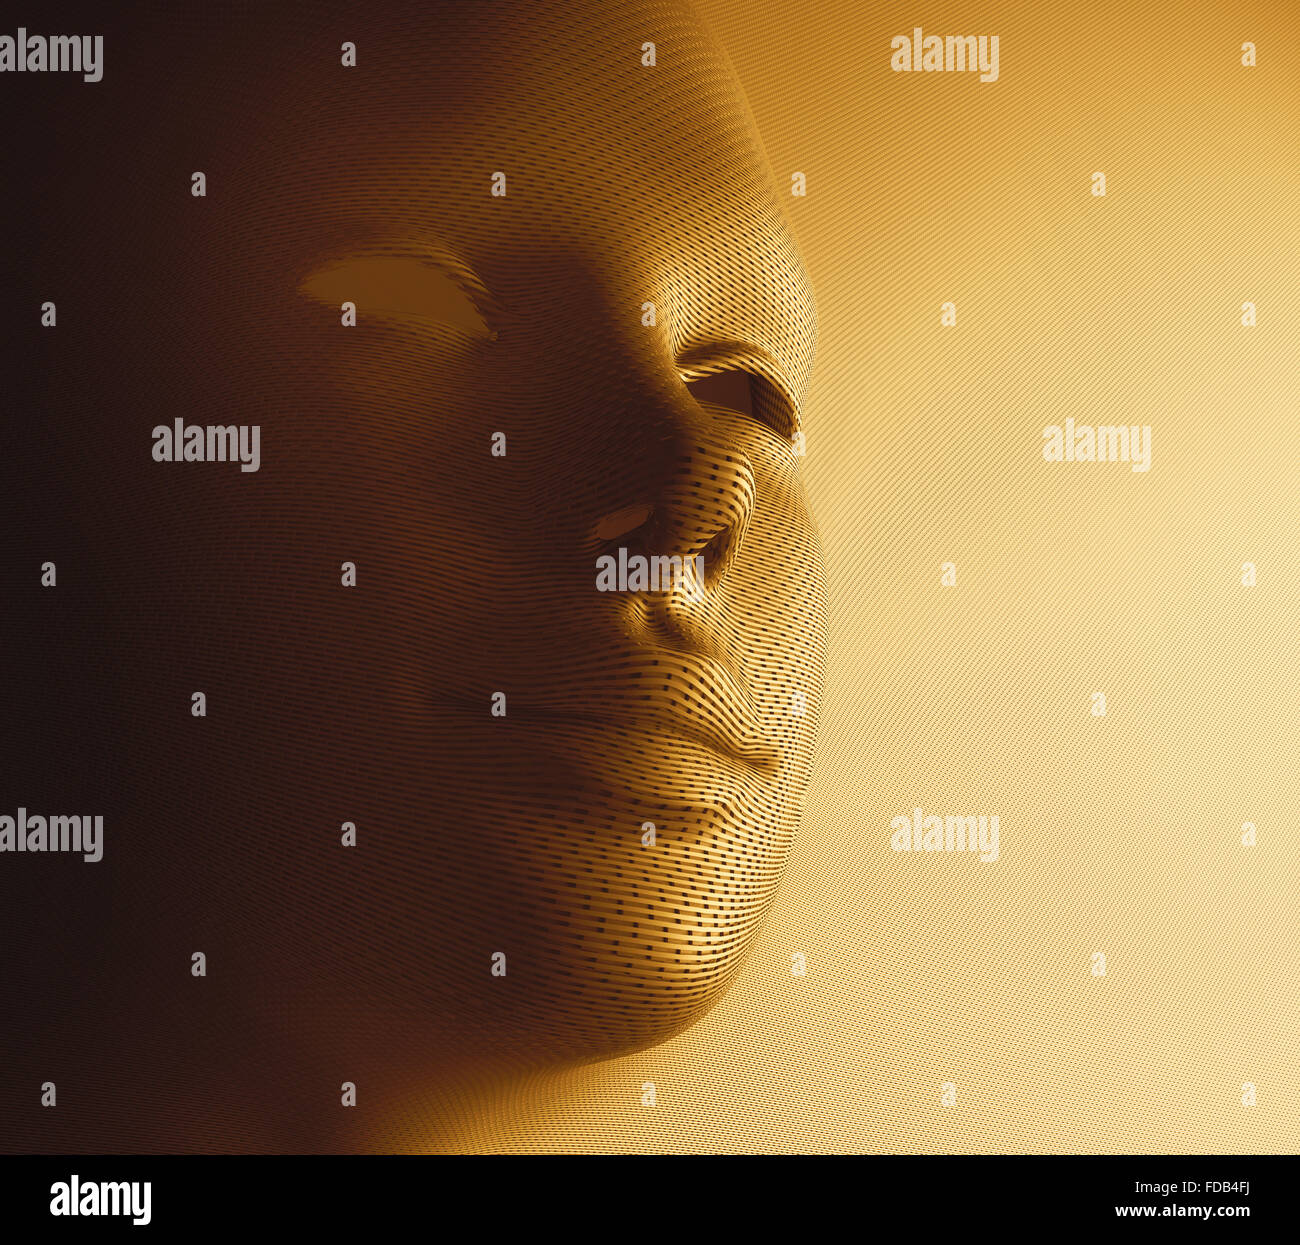 Textured human face in golden mask format. - Stock Image